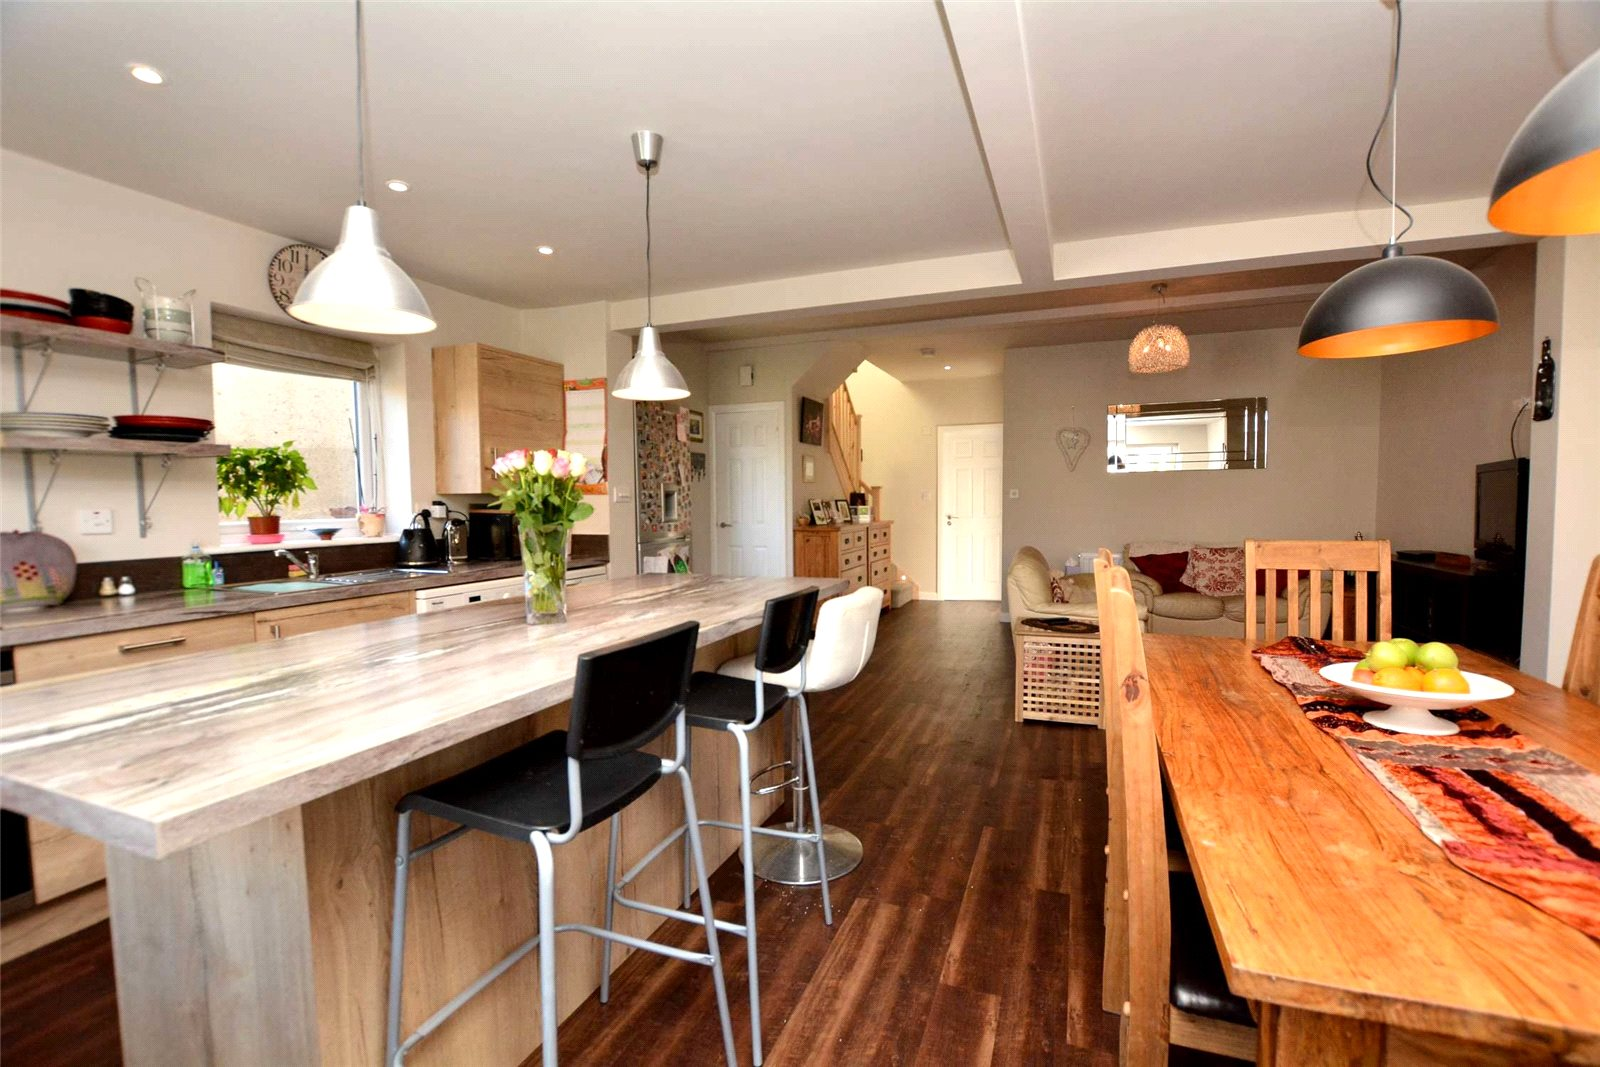 property for sale in Pudsey, interior kitchen dining area